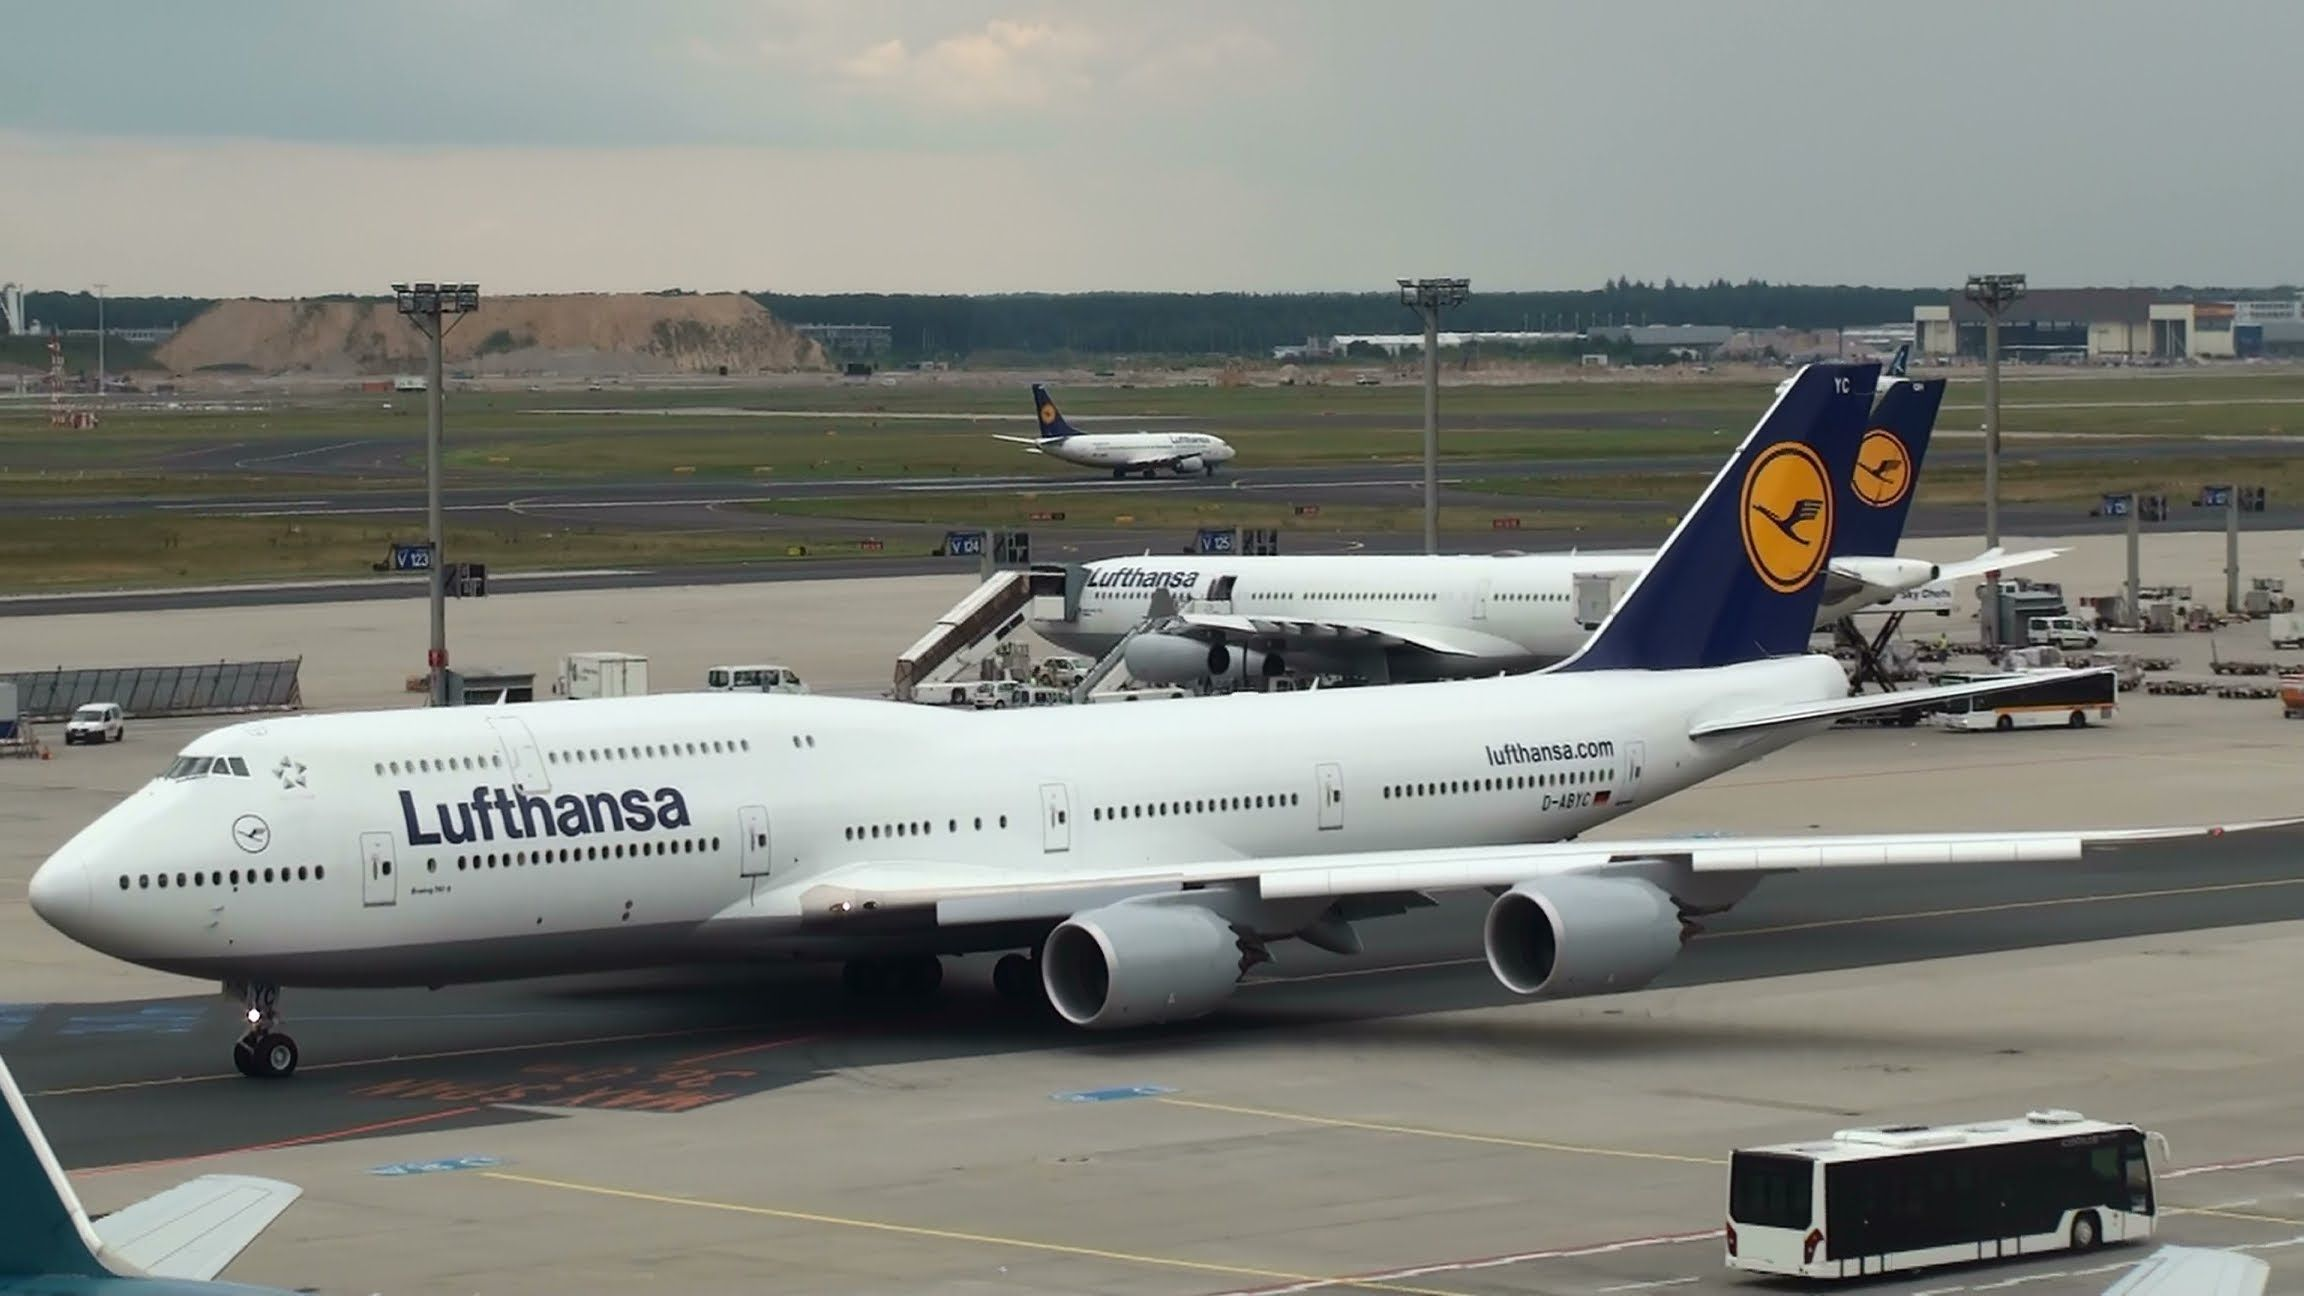 Lufthansa Boeing 747 8 Taxiing For Takeoff At Frankfurt Airport Full Hd Boeing 747 8 Boeing 747 Boeing